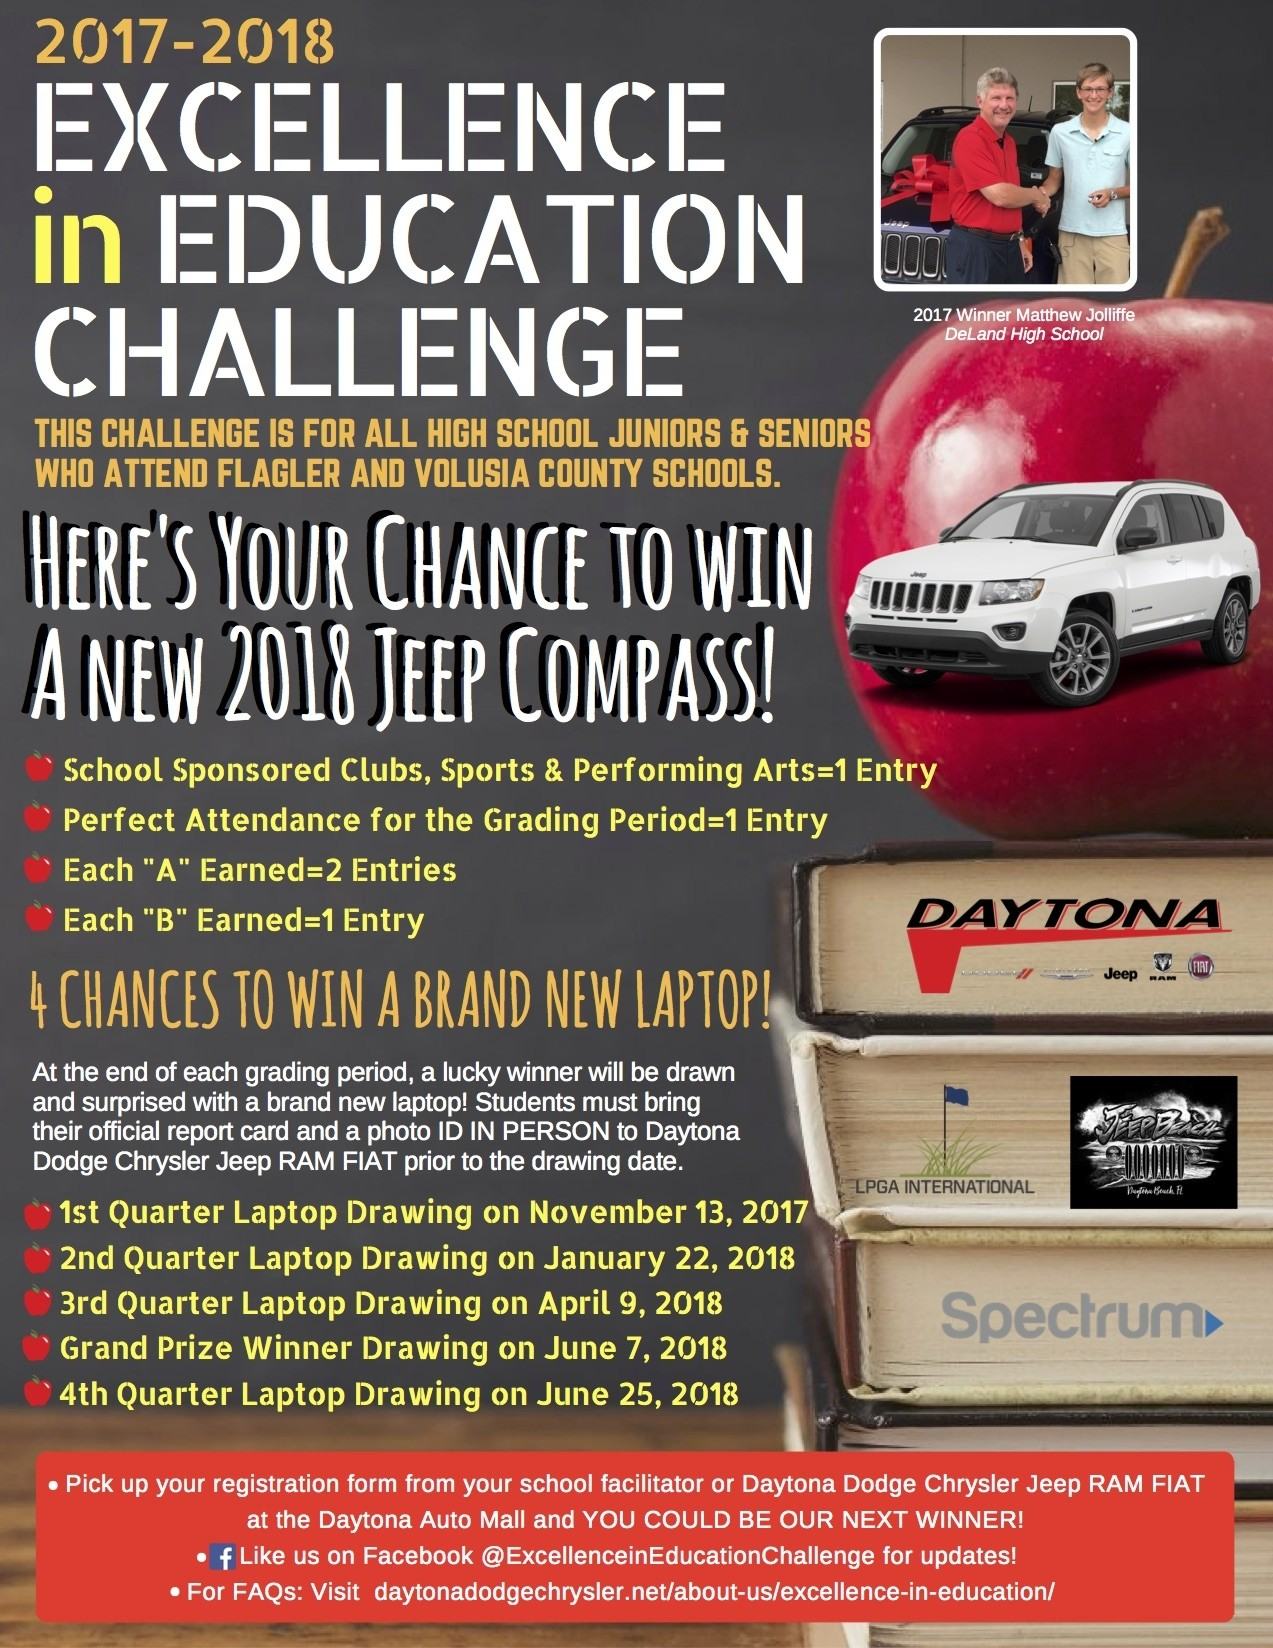 2017-2018 Excellence in Education Challenge! This challenge is for all high school juniors and seniors who attend Flagler and Volusia County Schools.